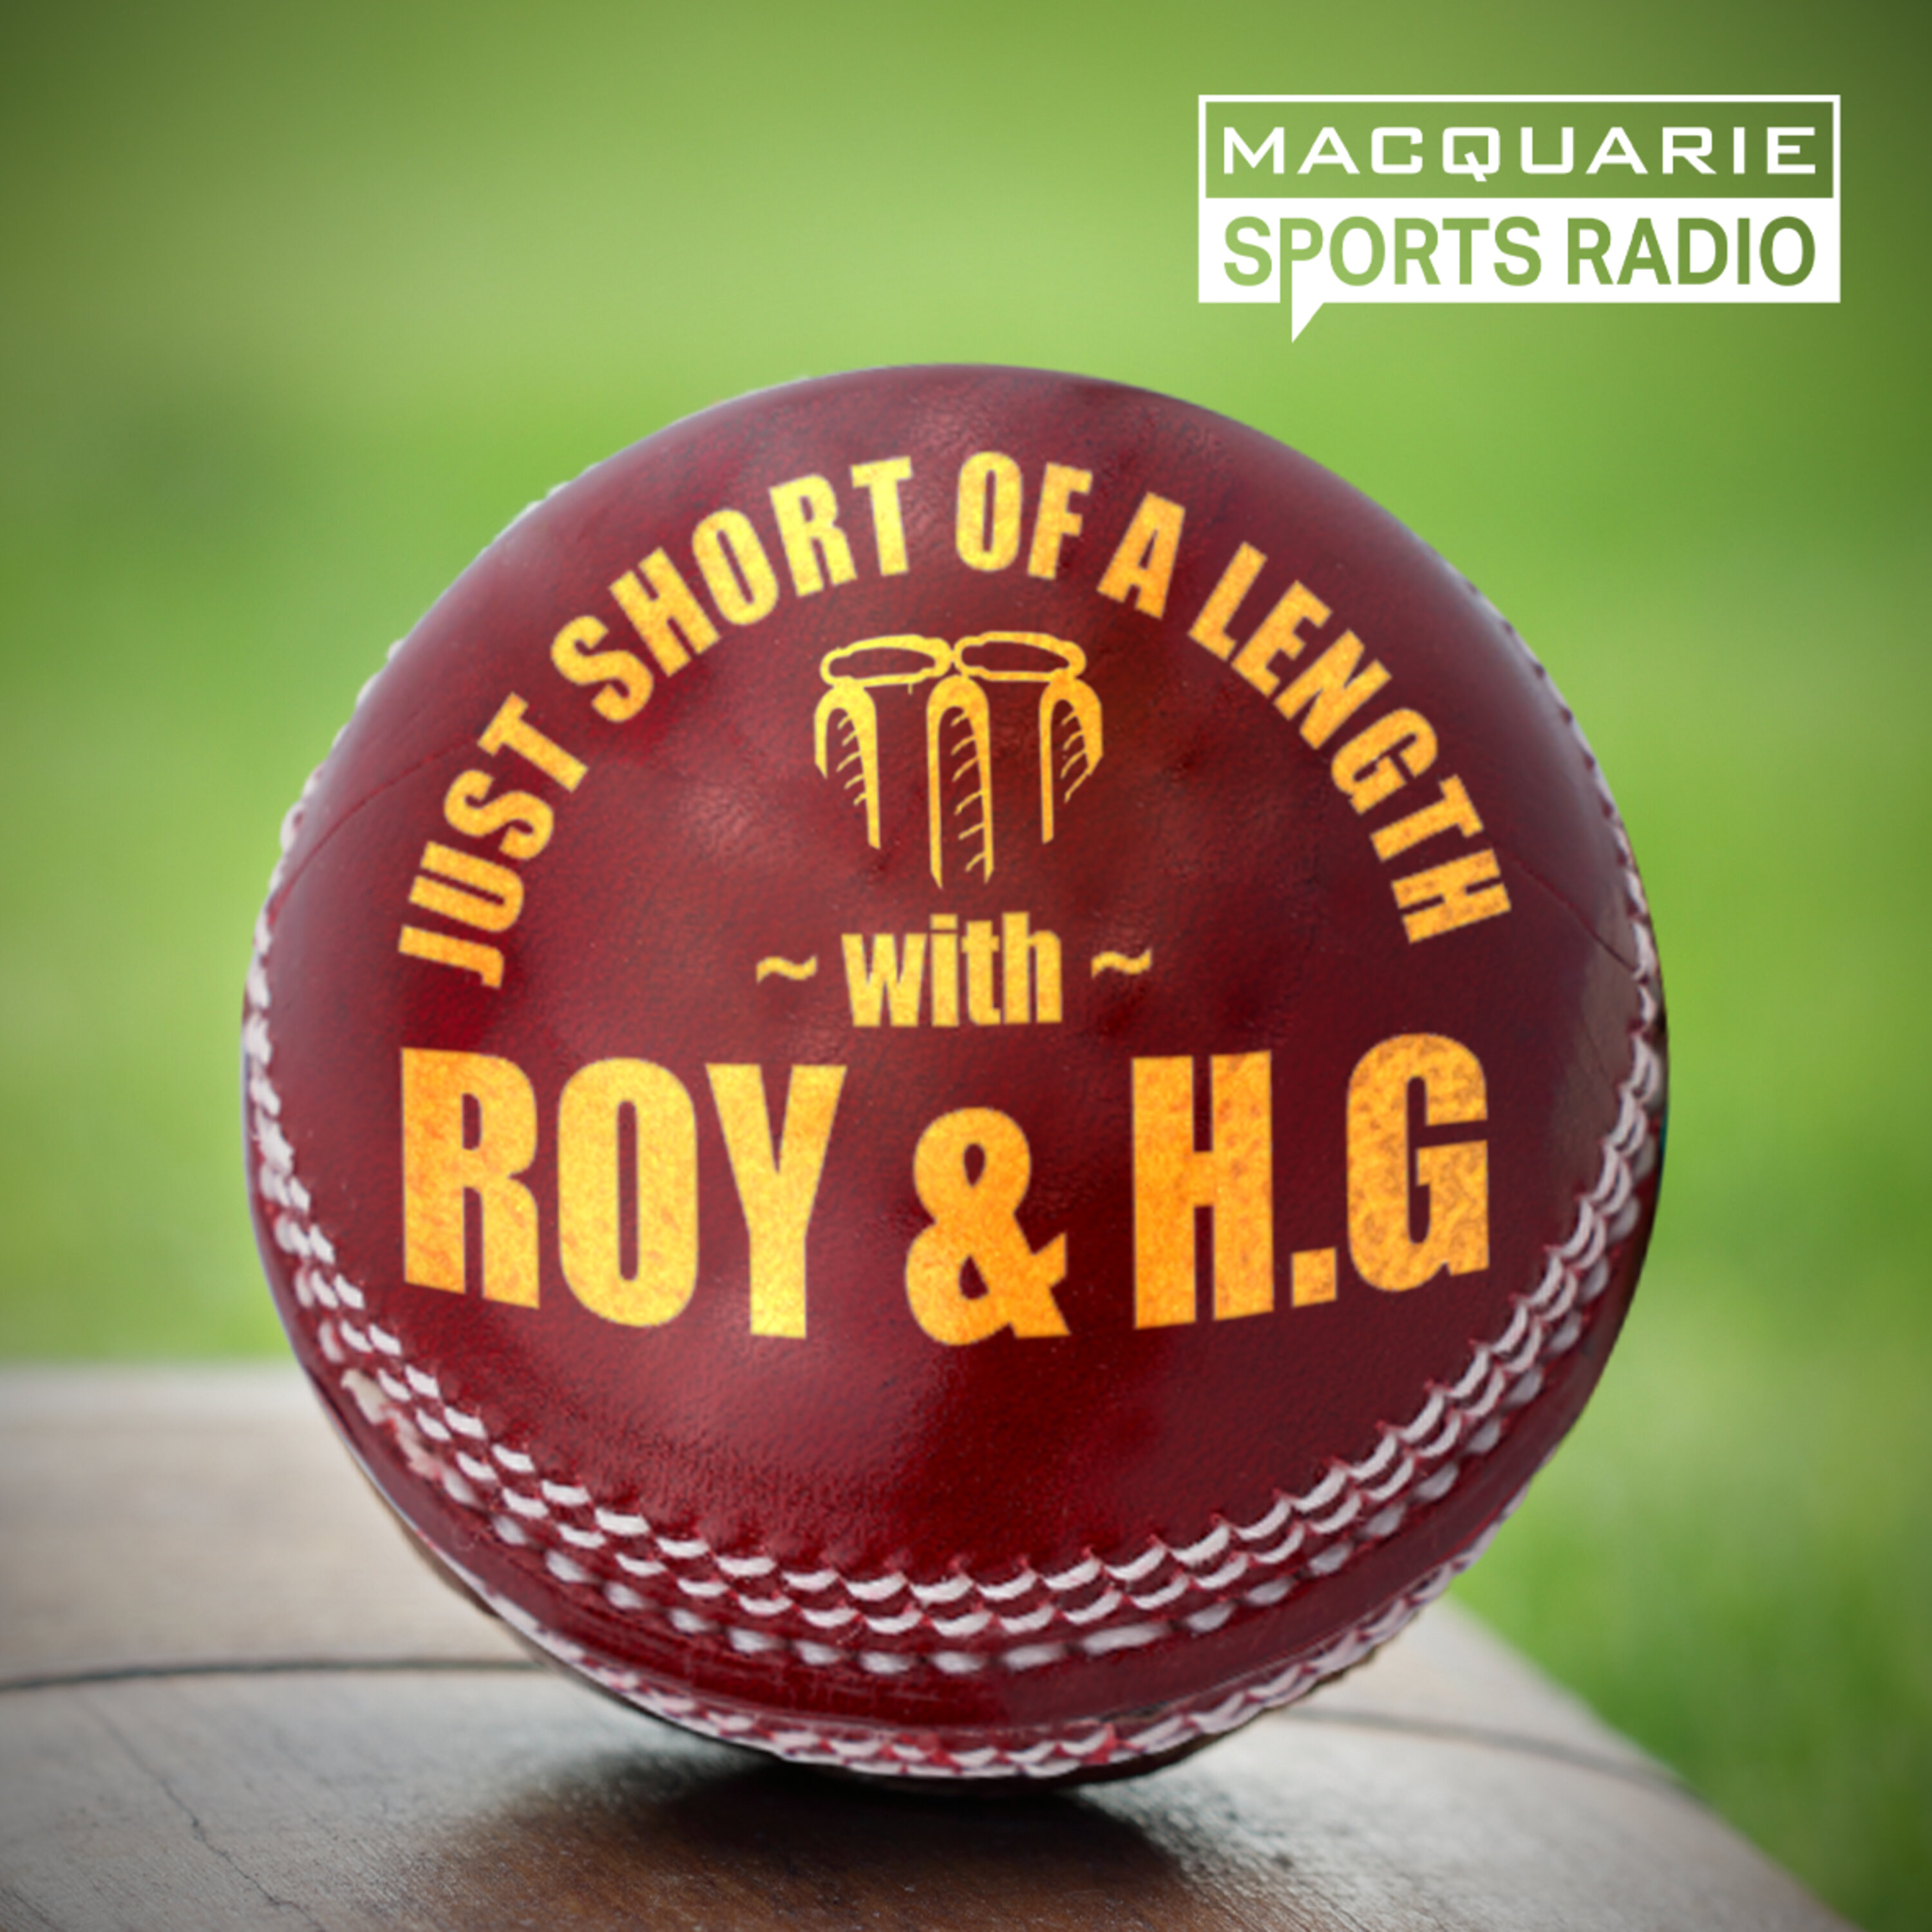 Just Short of a Length with Roy & HG